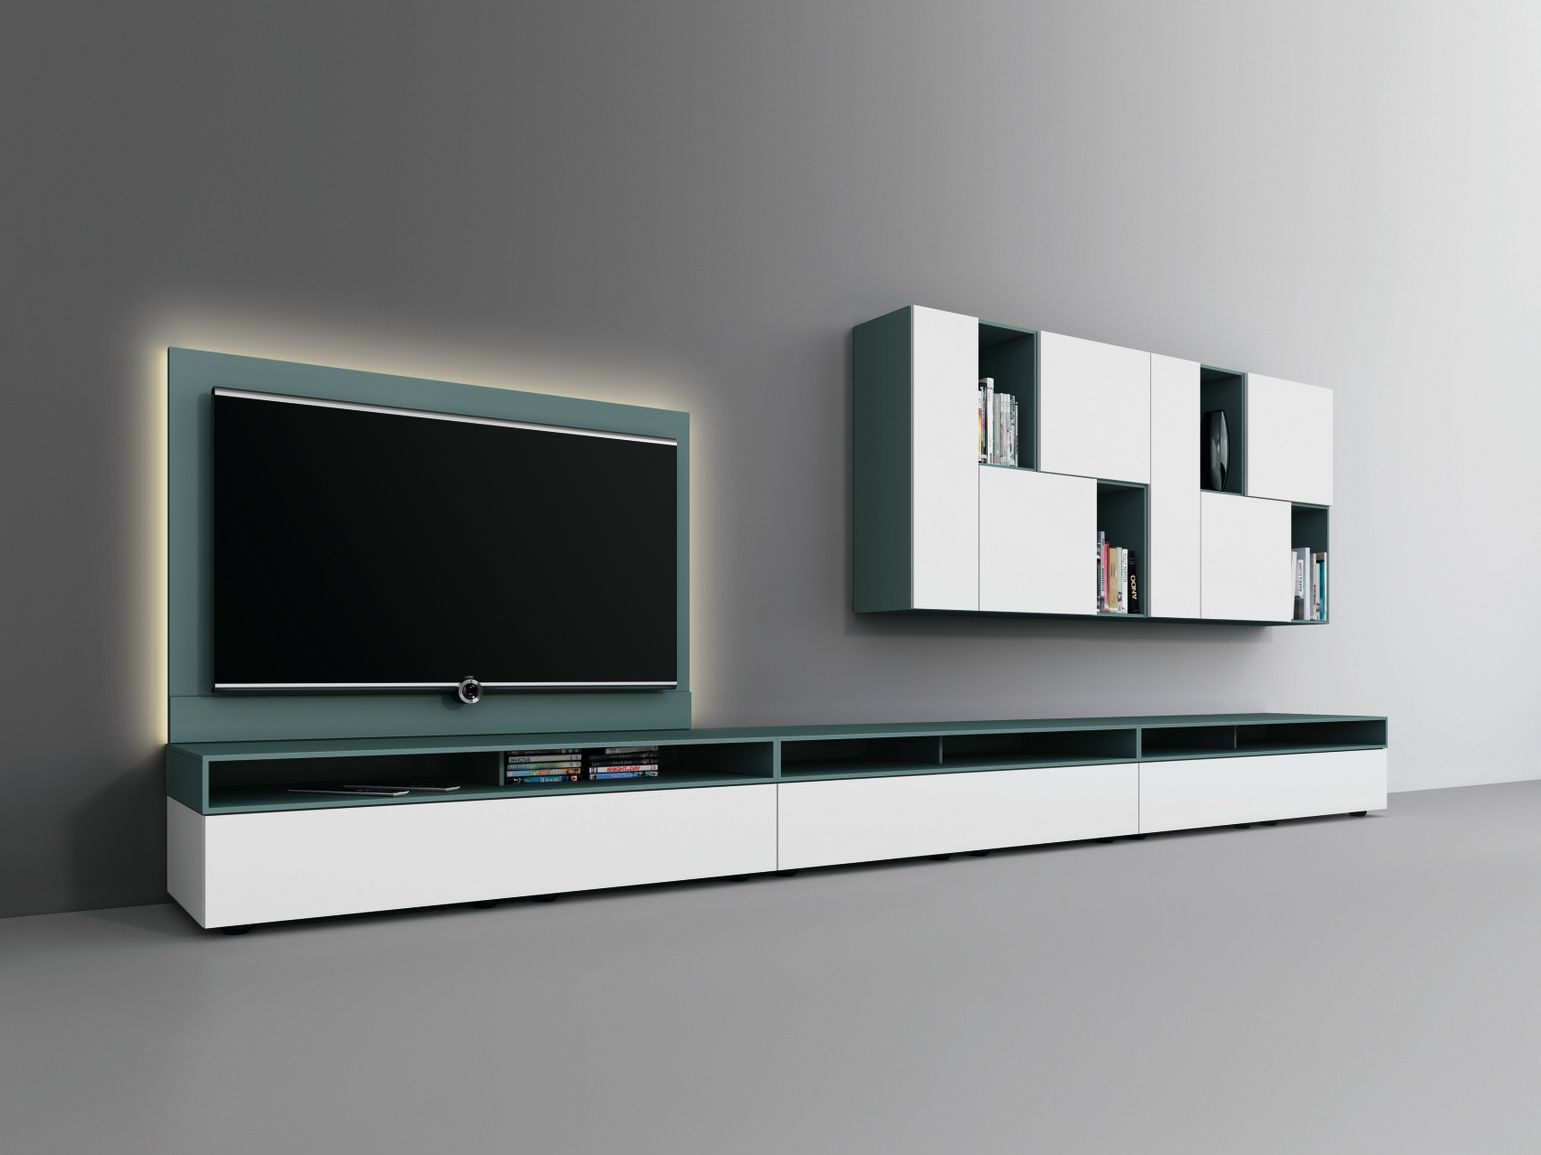 Sectional Suspended Storage Unit Cube Play By Interl Bke Design